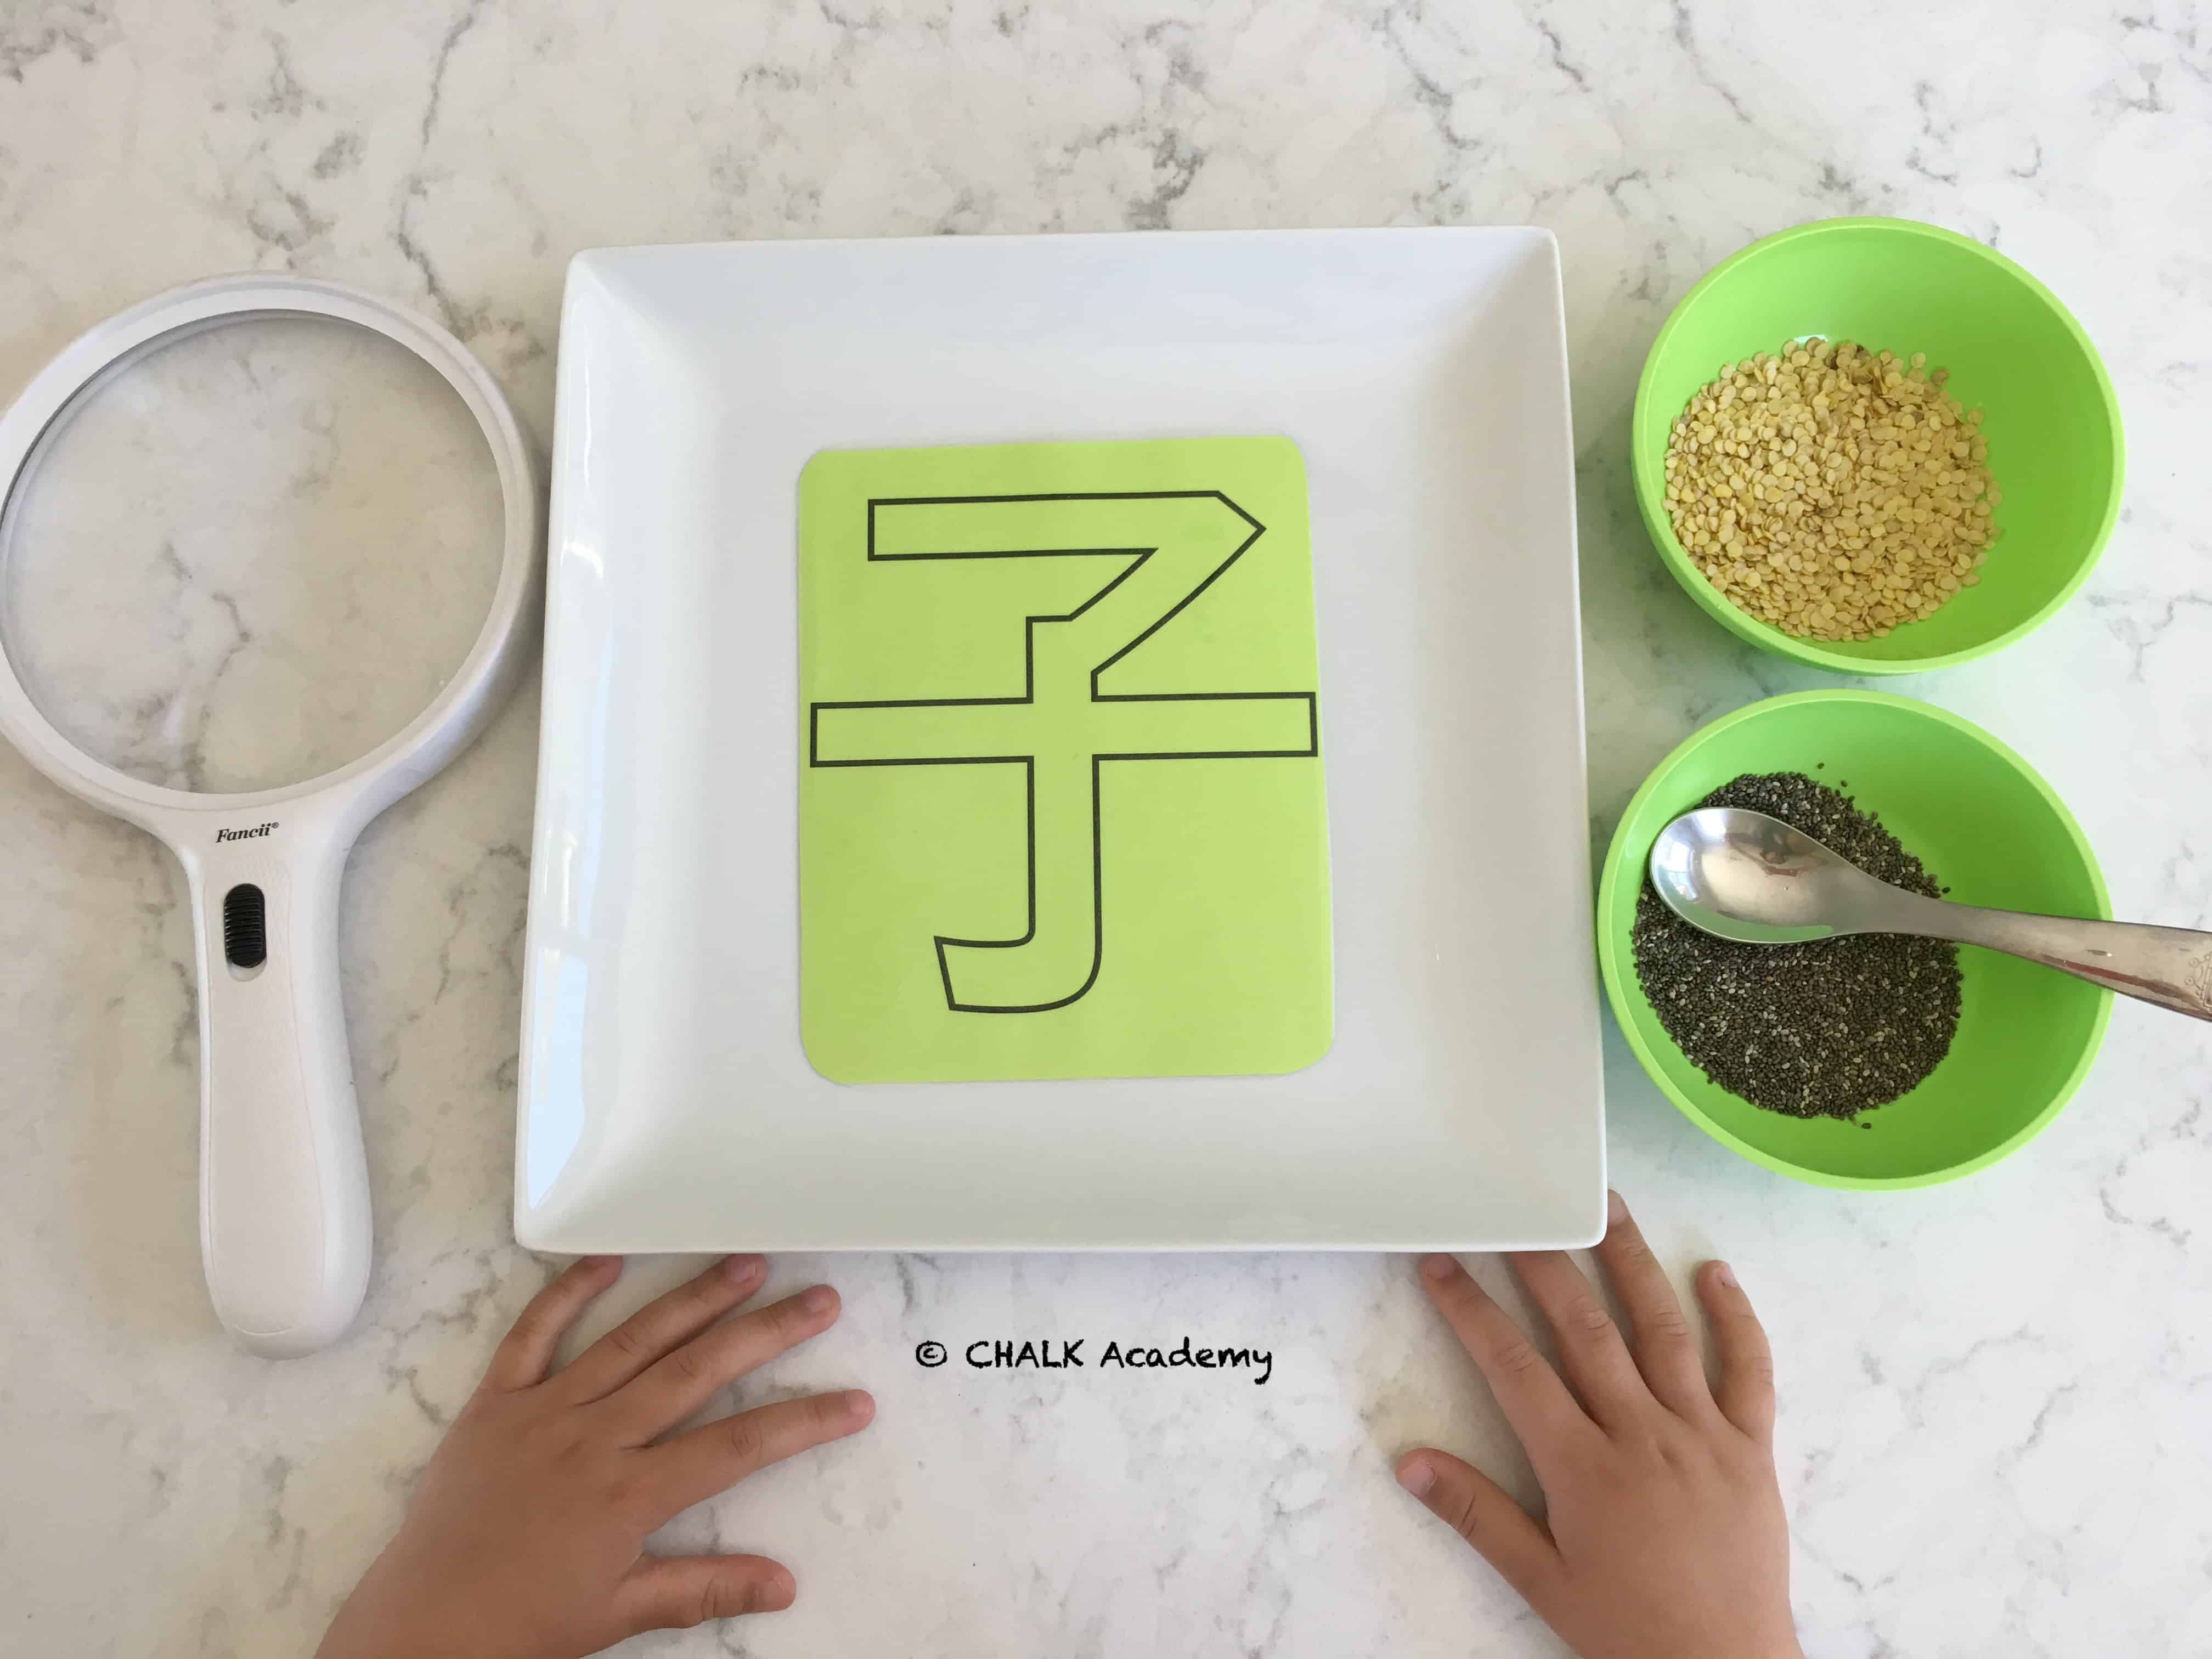 Learn to Write Chinese Character 子 with Seeds